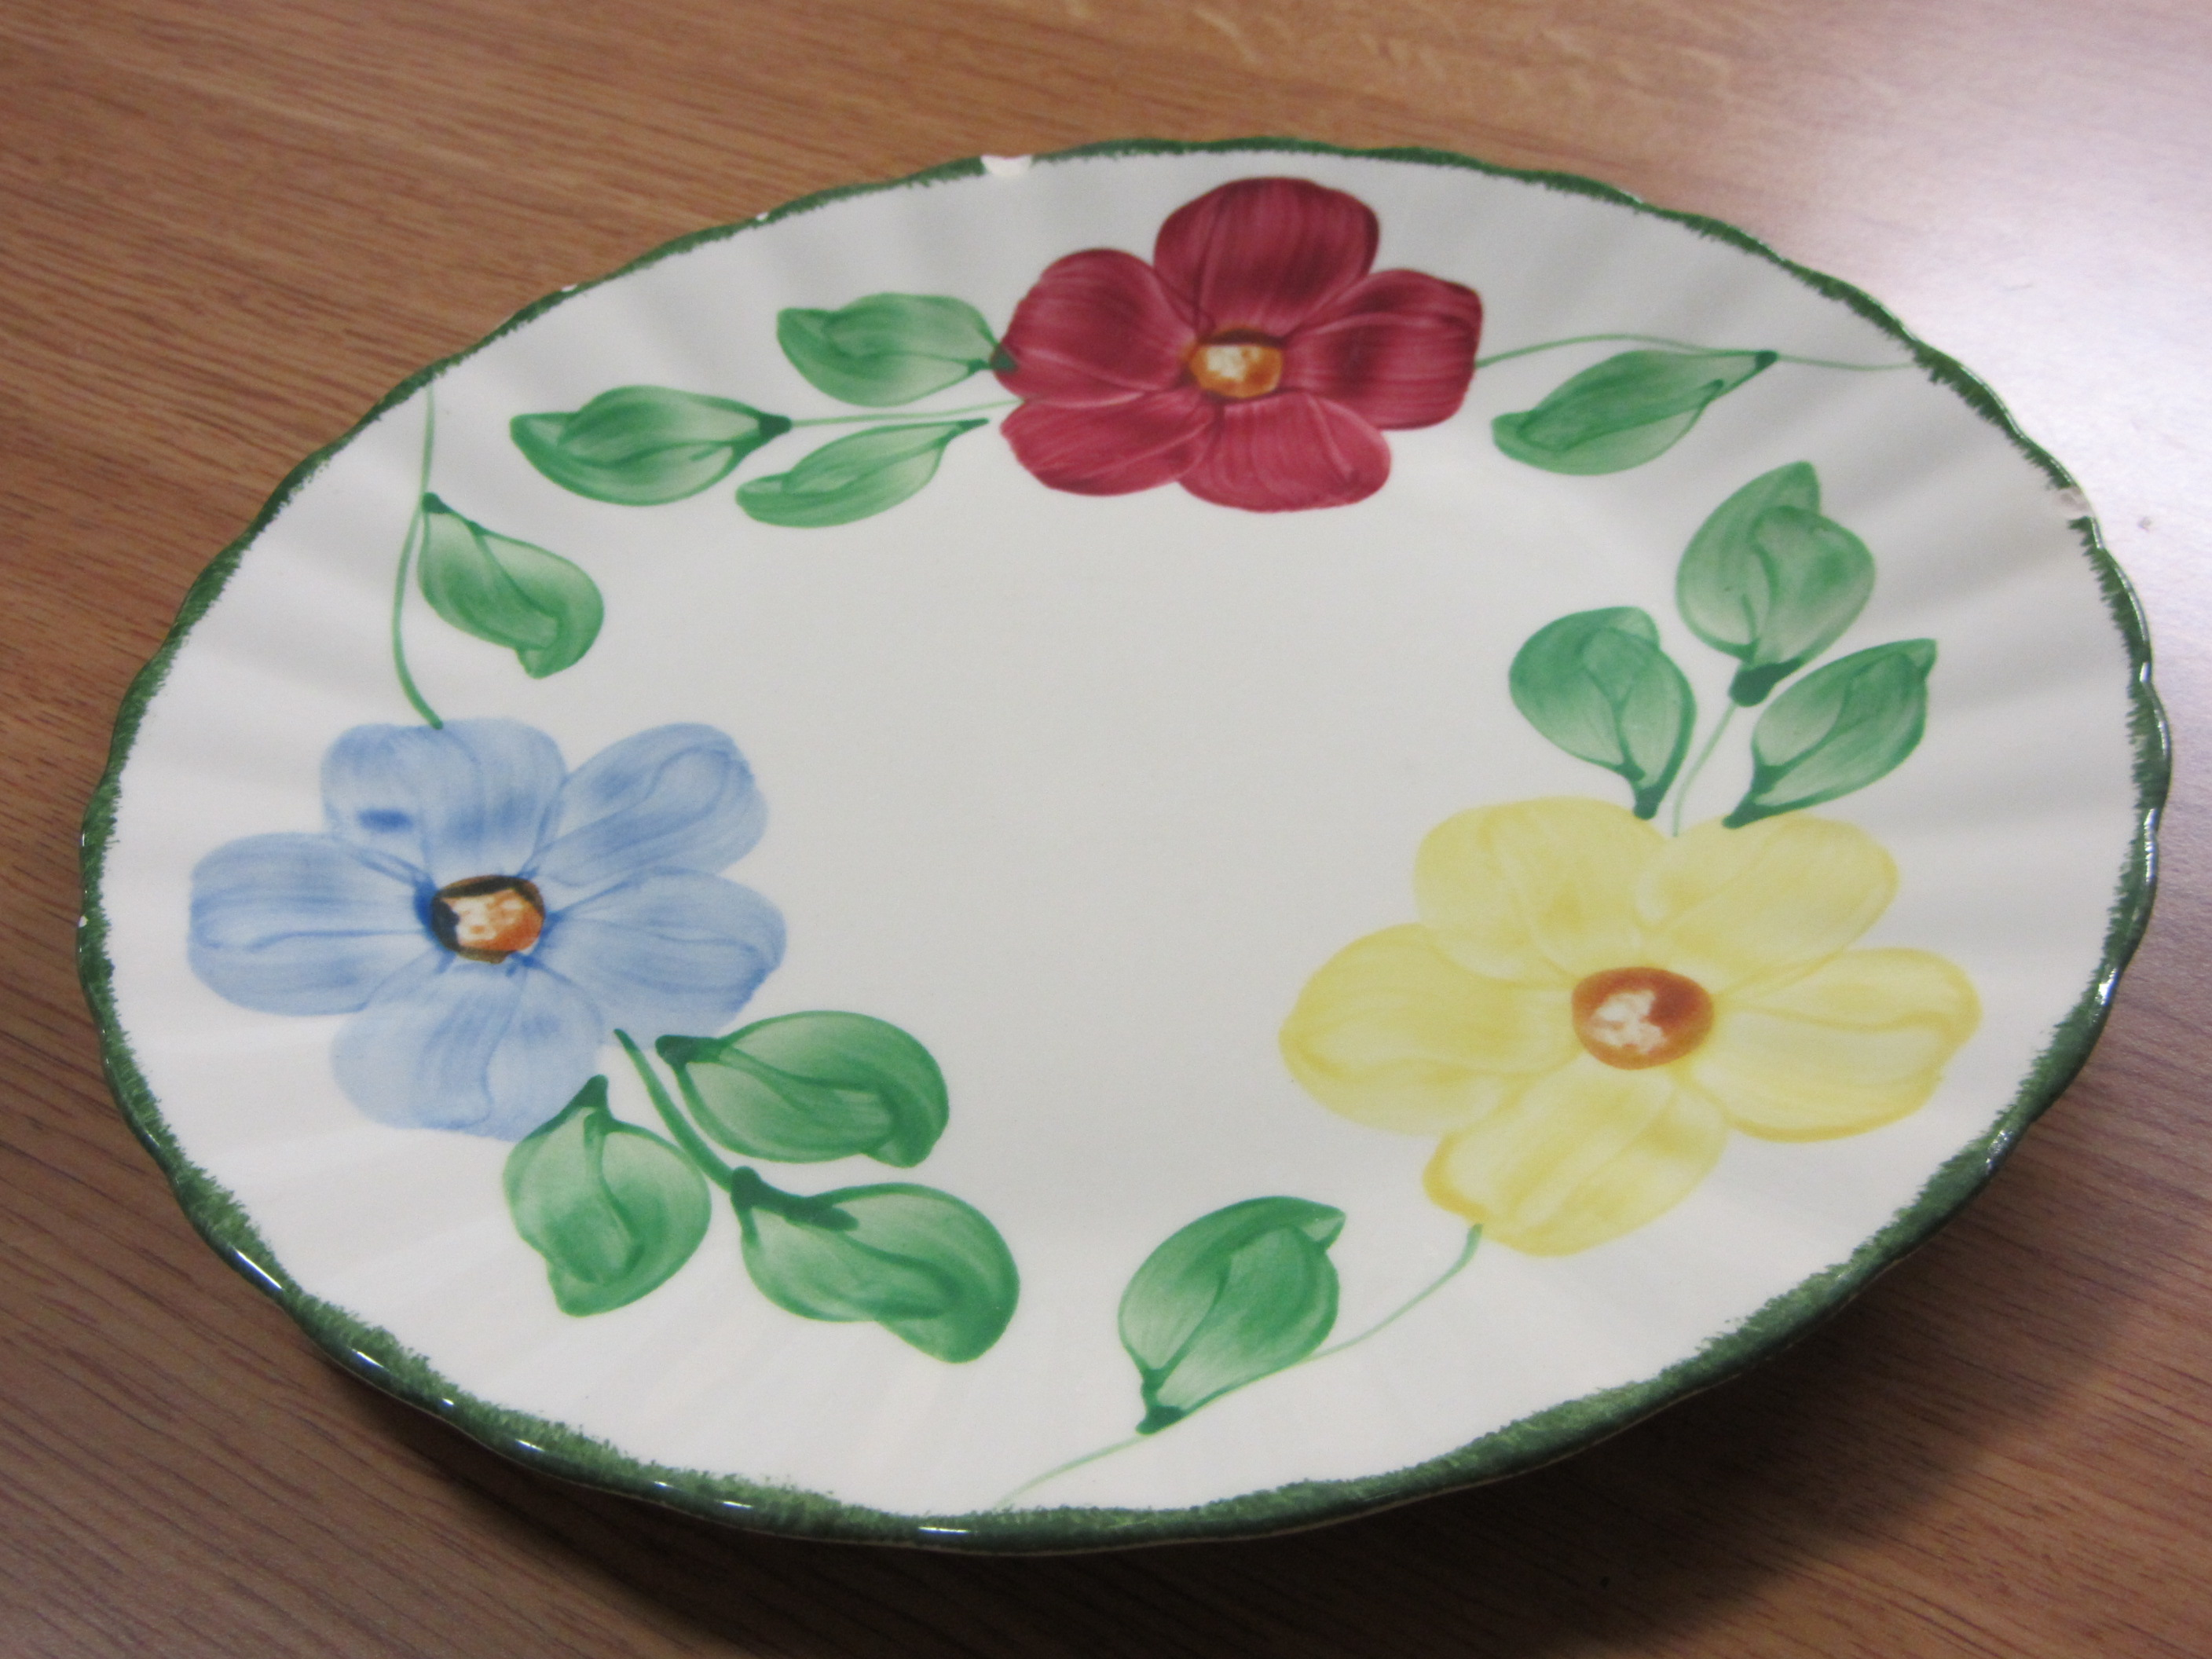 I didn't take a picture of a plate for the 18th, but I took this one on the 21st for this prompt. This is one of a few hand-painted plates that belonged to my paternal grandmother.